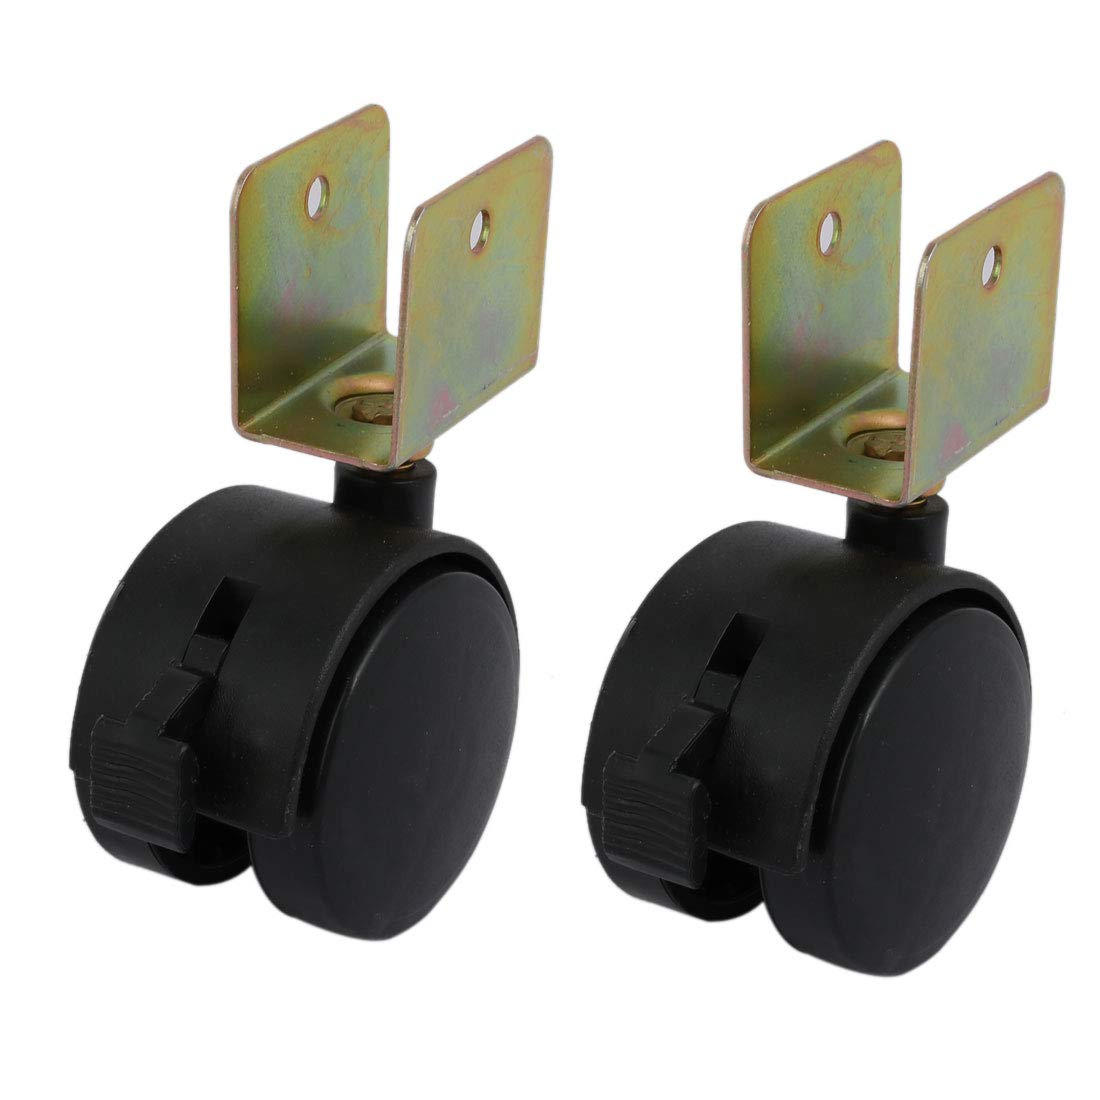 uxcell 2pcs 1.8 inch Dia Wheel 20mm U Bracket Swivel Brake Caster Black